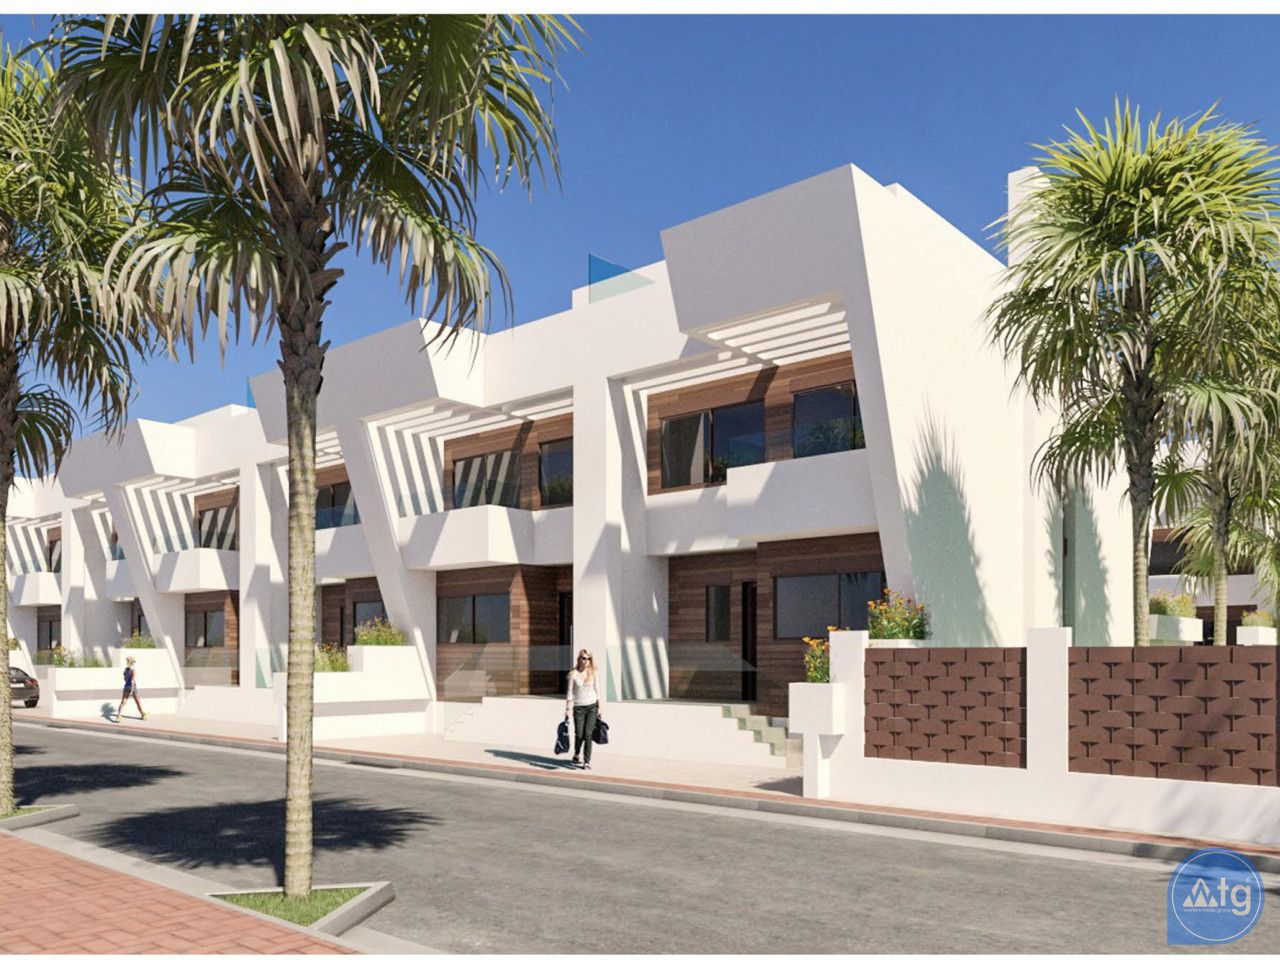 Piano terra in Centro. New duplex in sant joan d'alacant, costa blanca, spain - ahs1191